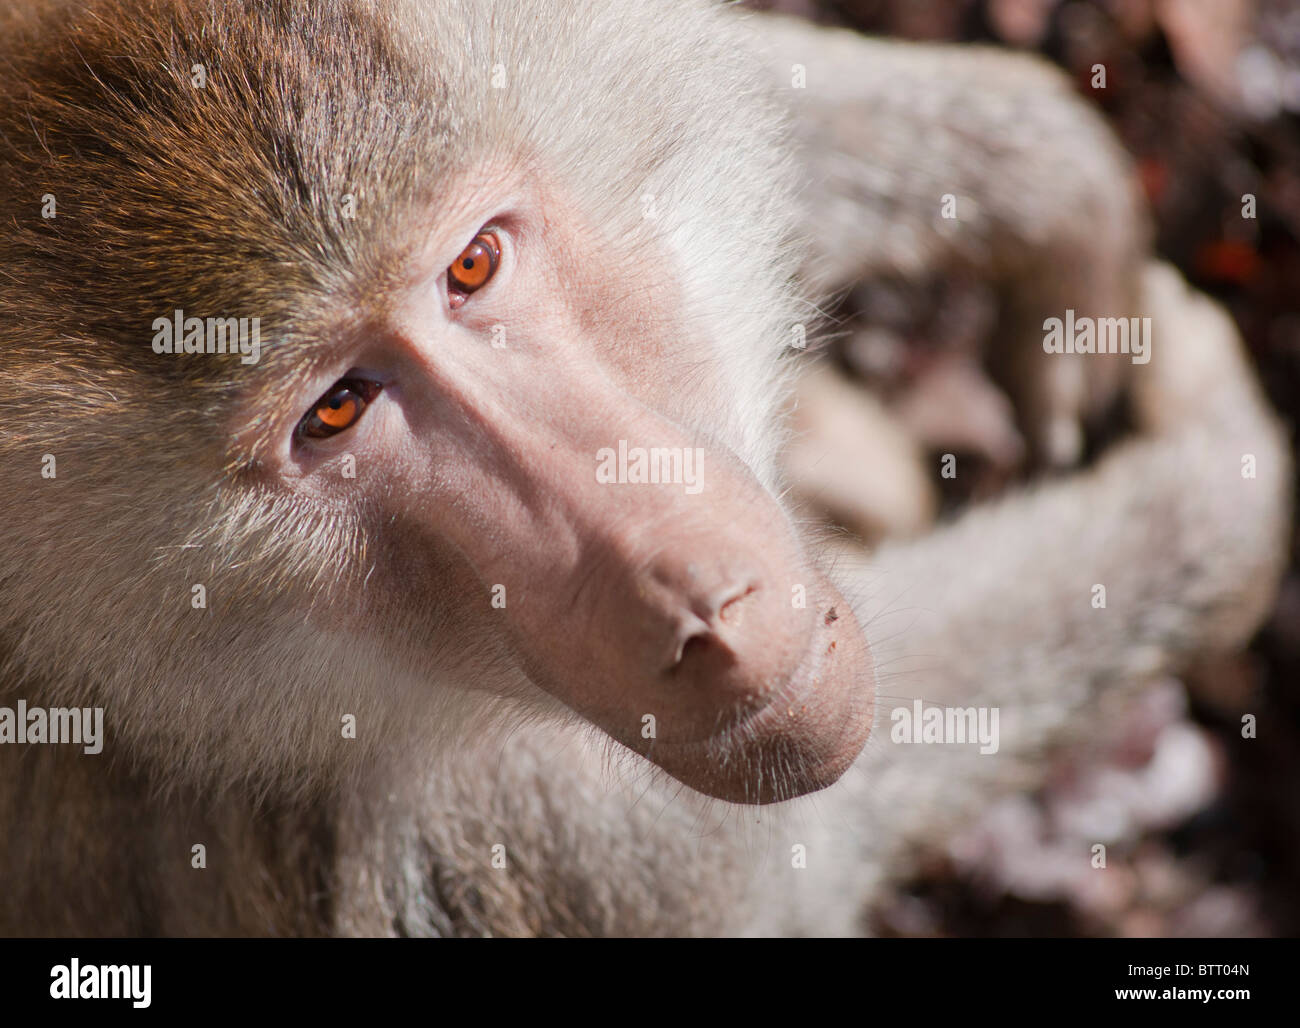 Papio Hamadryas Baboon with intense eye contact. Stock Photo